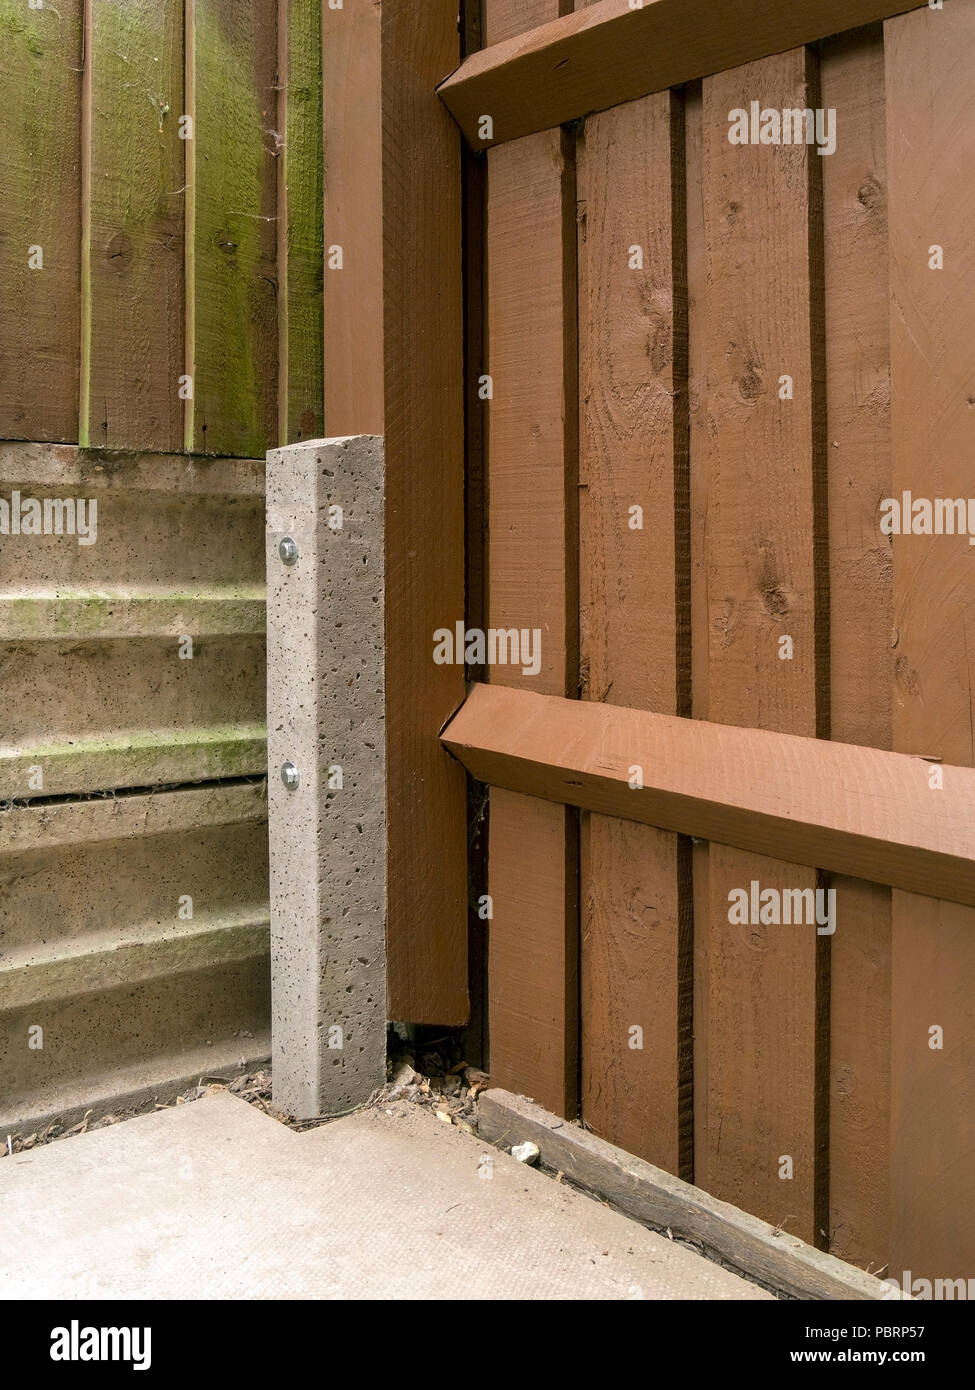 Reinforced concrete 'godfather' fence post spur used to repair wooden post and rail fence with pails - Stock Image